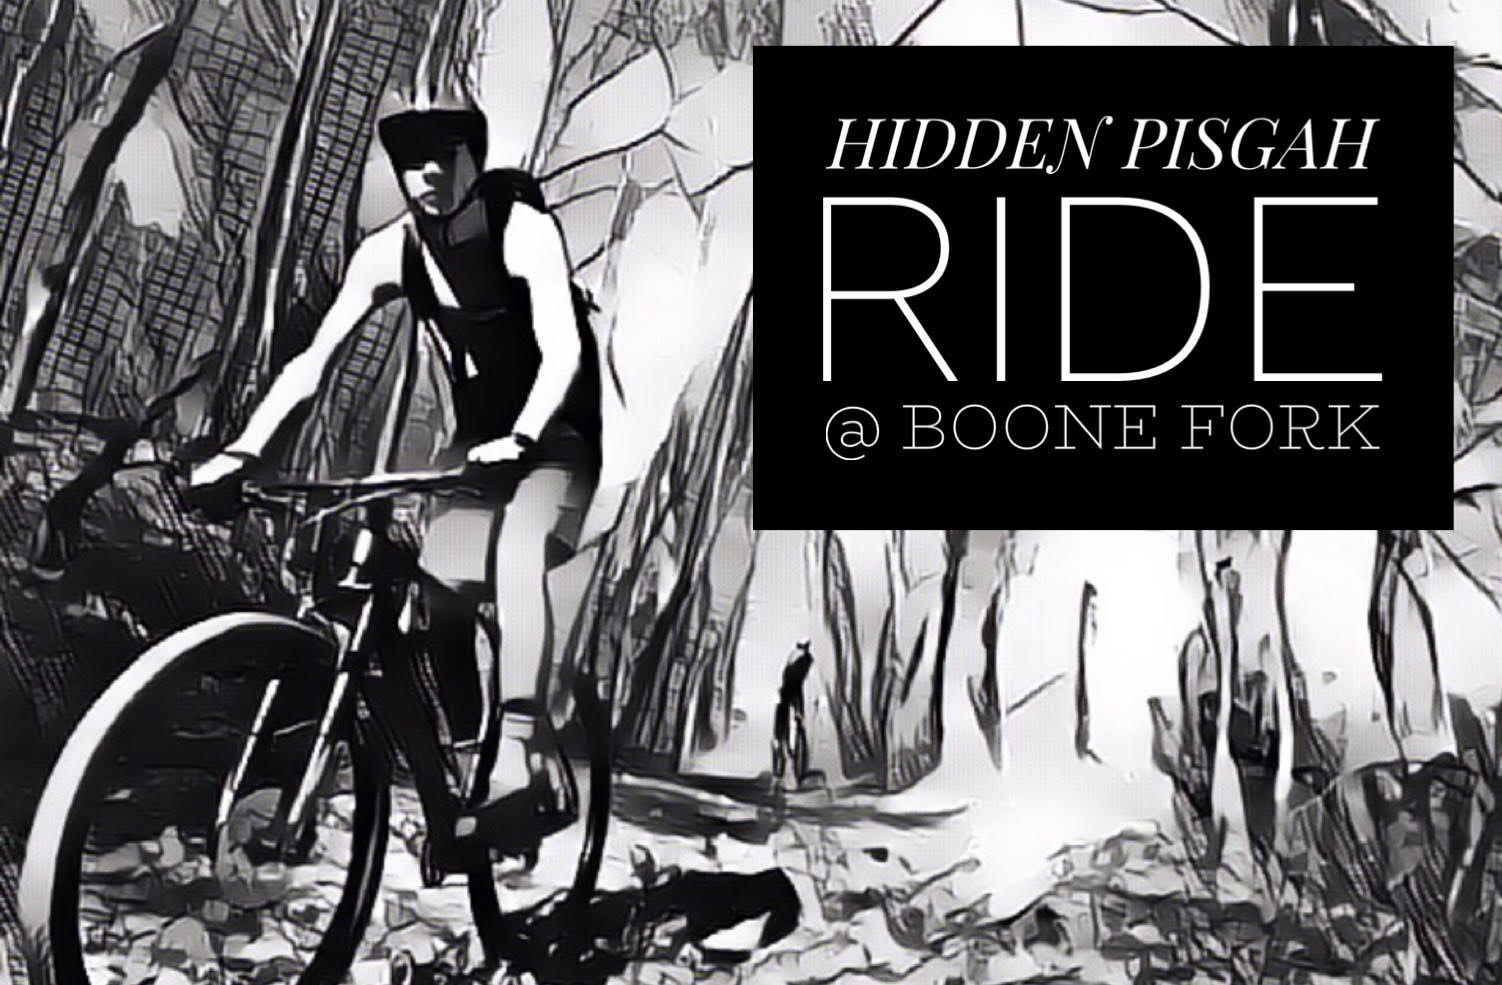 "Join us SATURDAY, JANUARY 26th at 10am for a mountain bike ride to rediscover the Boone Fork area of Pisgah -- less than 20 mins south of downtown Blowing Rock and 10 mins north of Lenoir off Roby Martin Road -- 2843-2783 Roby Martin Road, Lenoir, NC 28645. Park on the LEFT side of SPENCER BRANCH ROAD but do not block the gate!  This unique area on the eastern edge of Pisgah is a labyrinth of old single track and logging roads, making it ideal for mountain bike adventures. This area has a rich history of mountain biking, in 1994, two of its trails were even featured in ""Mountain Biking the Appalachians"" by Lori Finley, but in later years, it became overgrown and forgotten by most. Now, thanks to the hard work of the Northwest NC Mountain Bike Alliance these trails will once again grace the pages of Pisgah trail maps. Over the course of the next several years, a 25-mile multi-use trail system will be developed. For now, we can all enjoy the Boone Fork area in its old school state that is reminiscent of the early days of mountain biking.   For our ride, we have a 12-mile figure eight planned to highlight some of the most accessible trails in the area. Our ride will start at the Corner of Roby Martin and Spencer Branch Rd. FR 189. Our loop will consist of a 4 mile ascent up Spencer Branch Rd. — a gated double track road that takes you to the top of the mountain; then, turn onto Yellow Trail — a beautiful section of Ridgeline single track; then, straight onto Double H — tight twisty downhill single track that takes you back to Spencer Branch; then, climb 1.5 miles up Spencer Branch to Gem Trail a fast and flowing 3.4 mile piece of mostly downhill single track; then, we will finish with a short downhill cruise on Spencer branch back to the entrance gate.  Ride will start at 10am from the Forest Service gate on Spencer Branch. A carpool from Rhoddie Bicycle Outfitters will leave Blowing Rock at 9:15.  More info, here: https://www.facebook.com/events/317565392201042/"